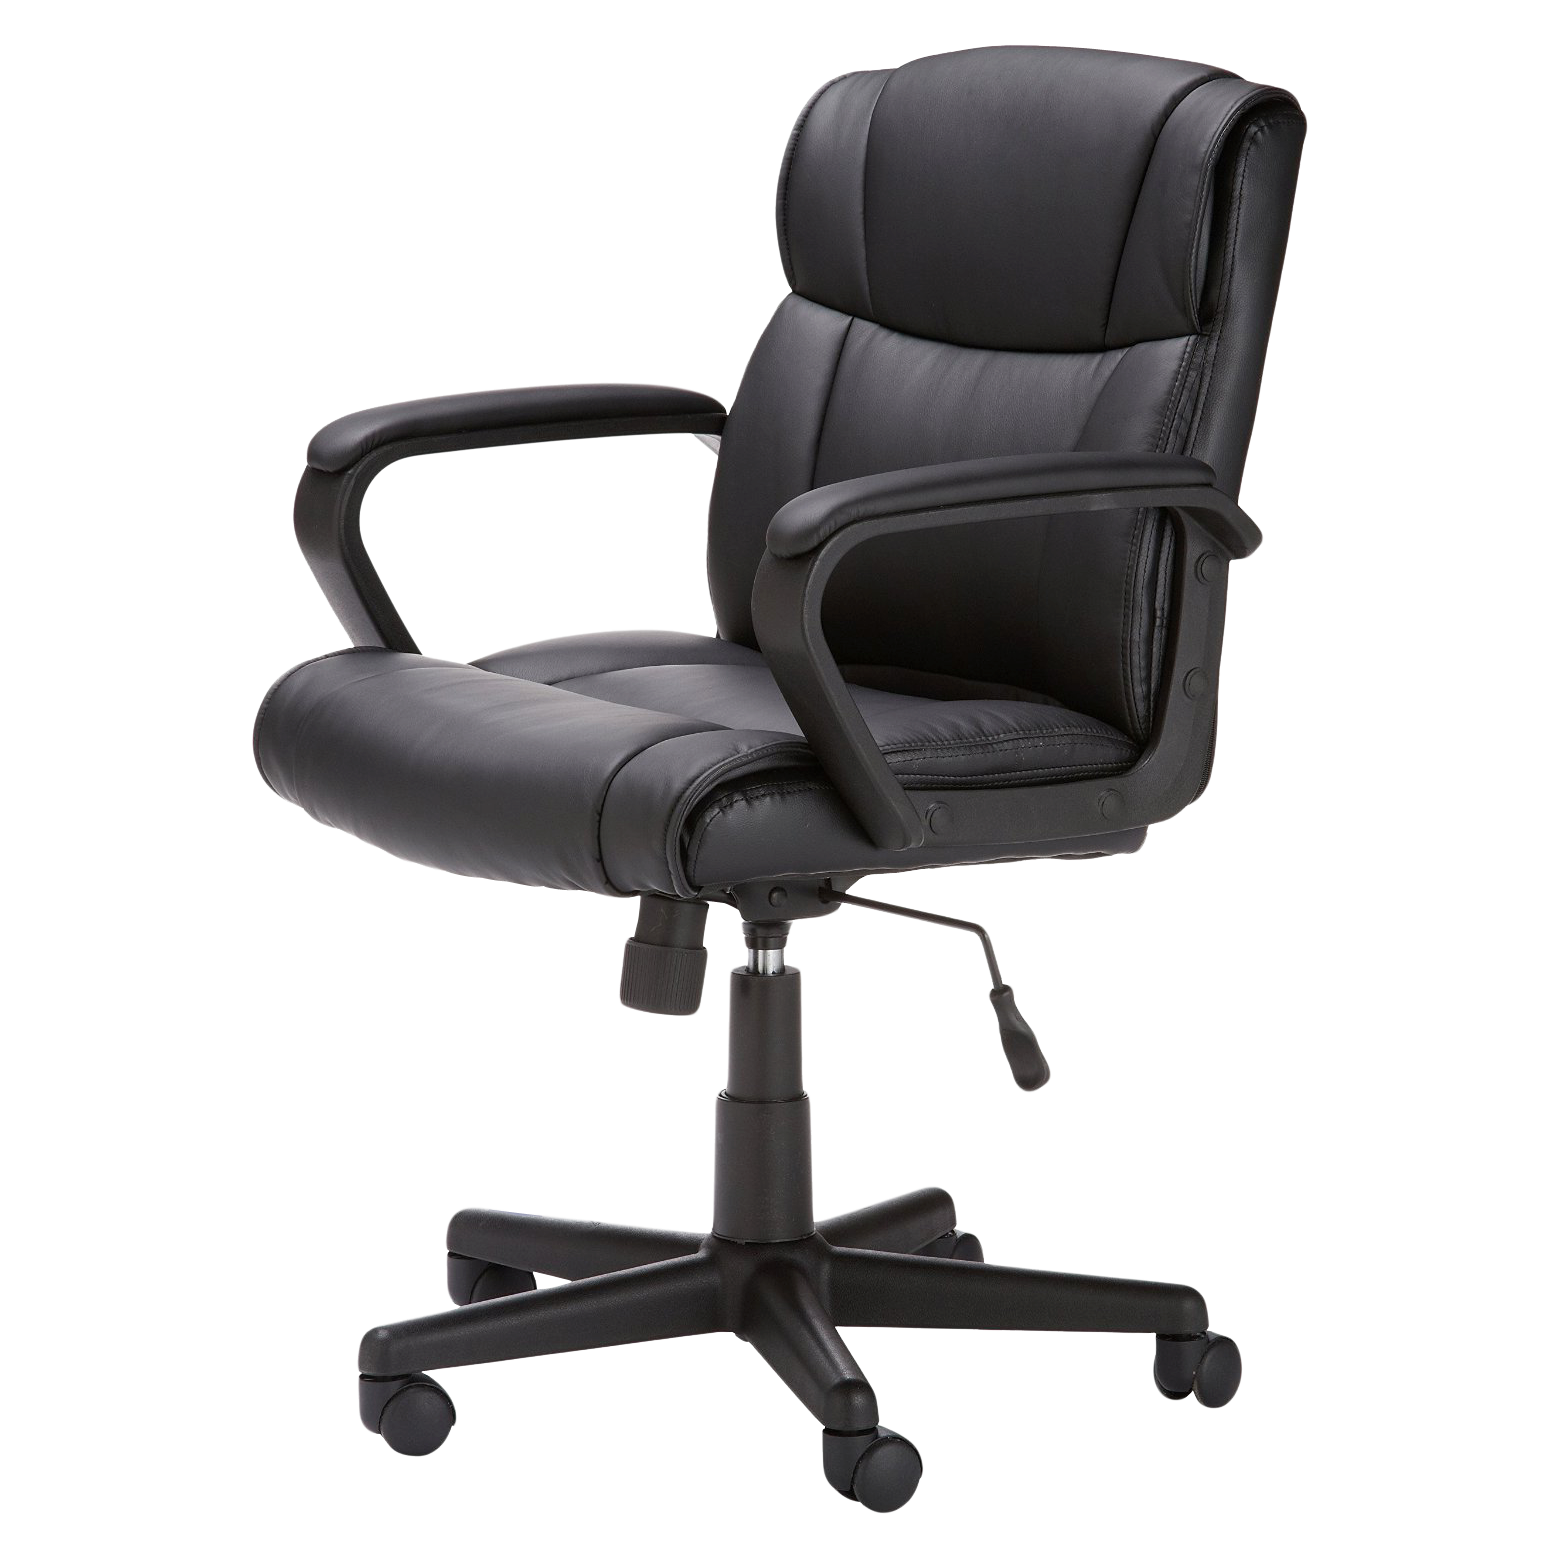 Rolling Chair Png Image Rolling Office Chair Office Chair Vintage Office Chair